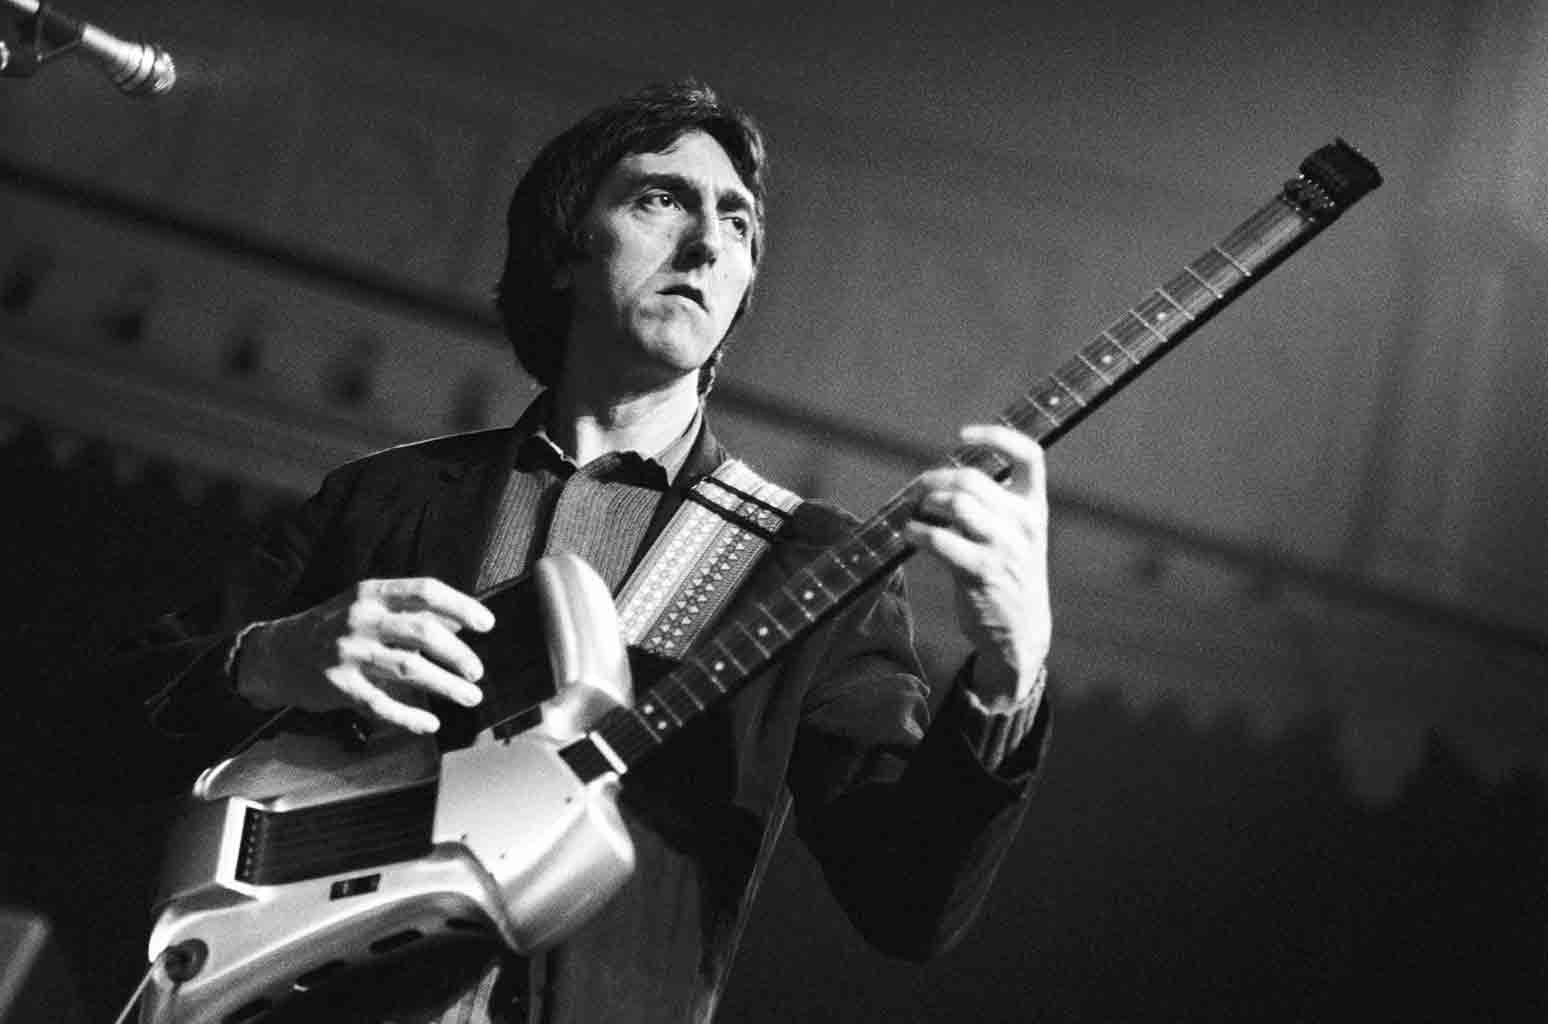 Allan Holdsworth performs live on stage at the Paradiso in Amsterdam, Netherlands on June 15, 1987.